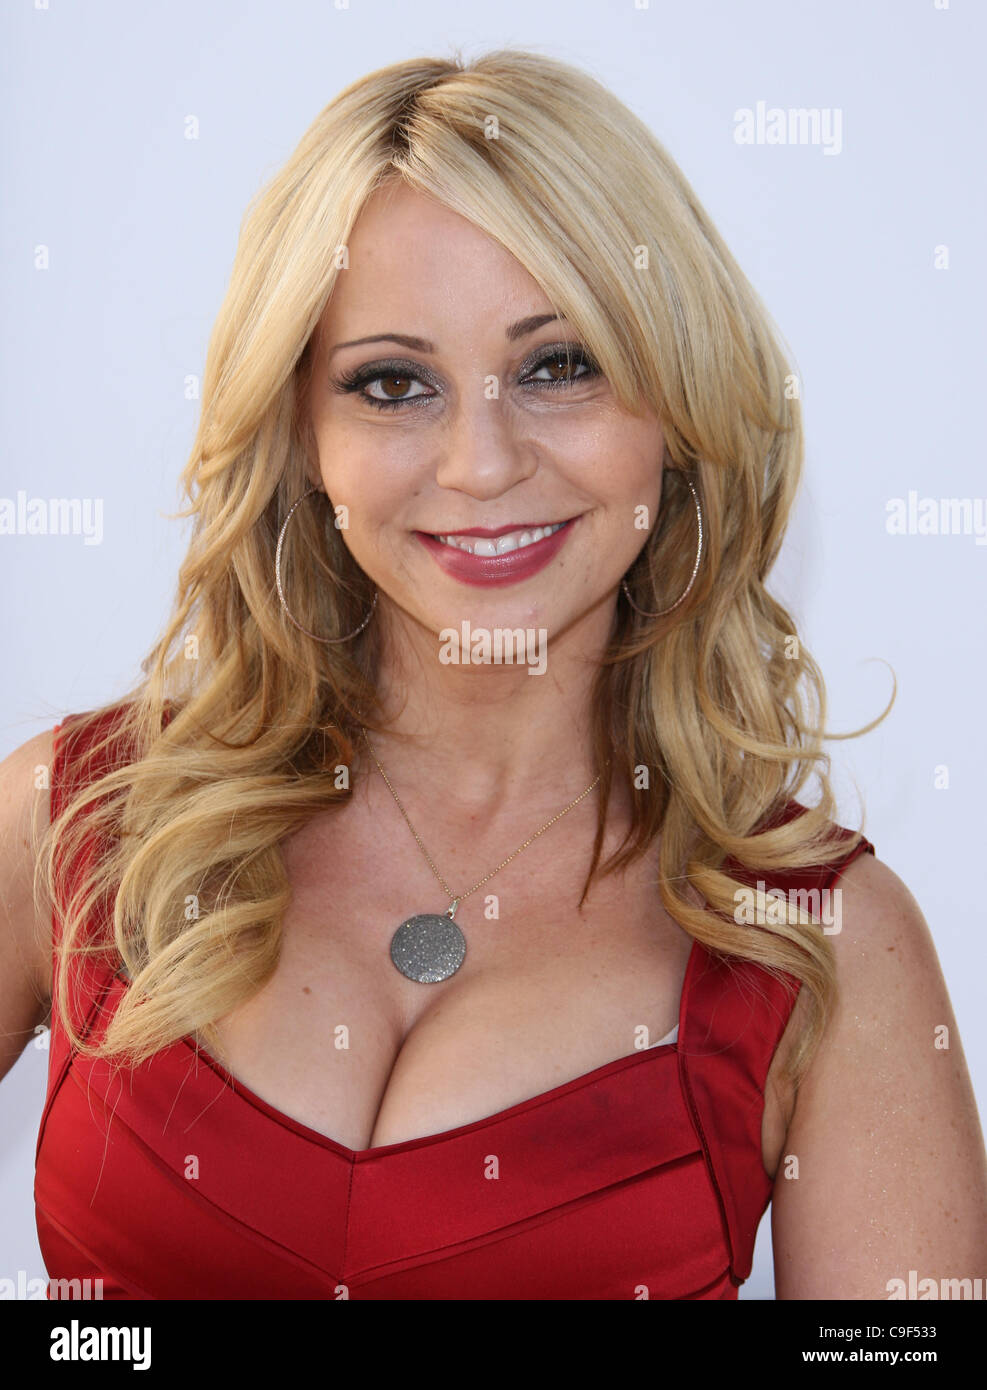 Tara Strong nudes (67 fotos), images Erotica, Instagram, legs 2019